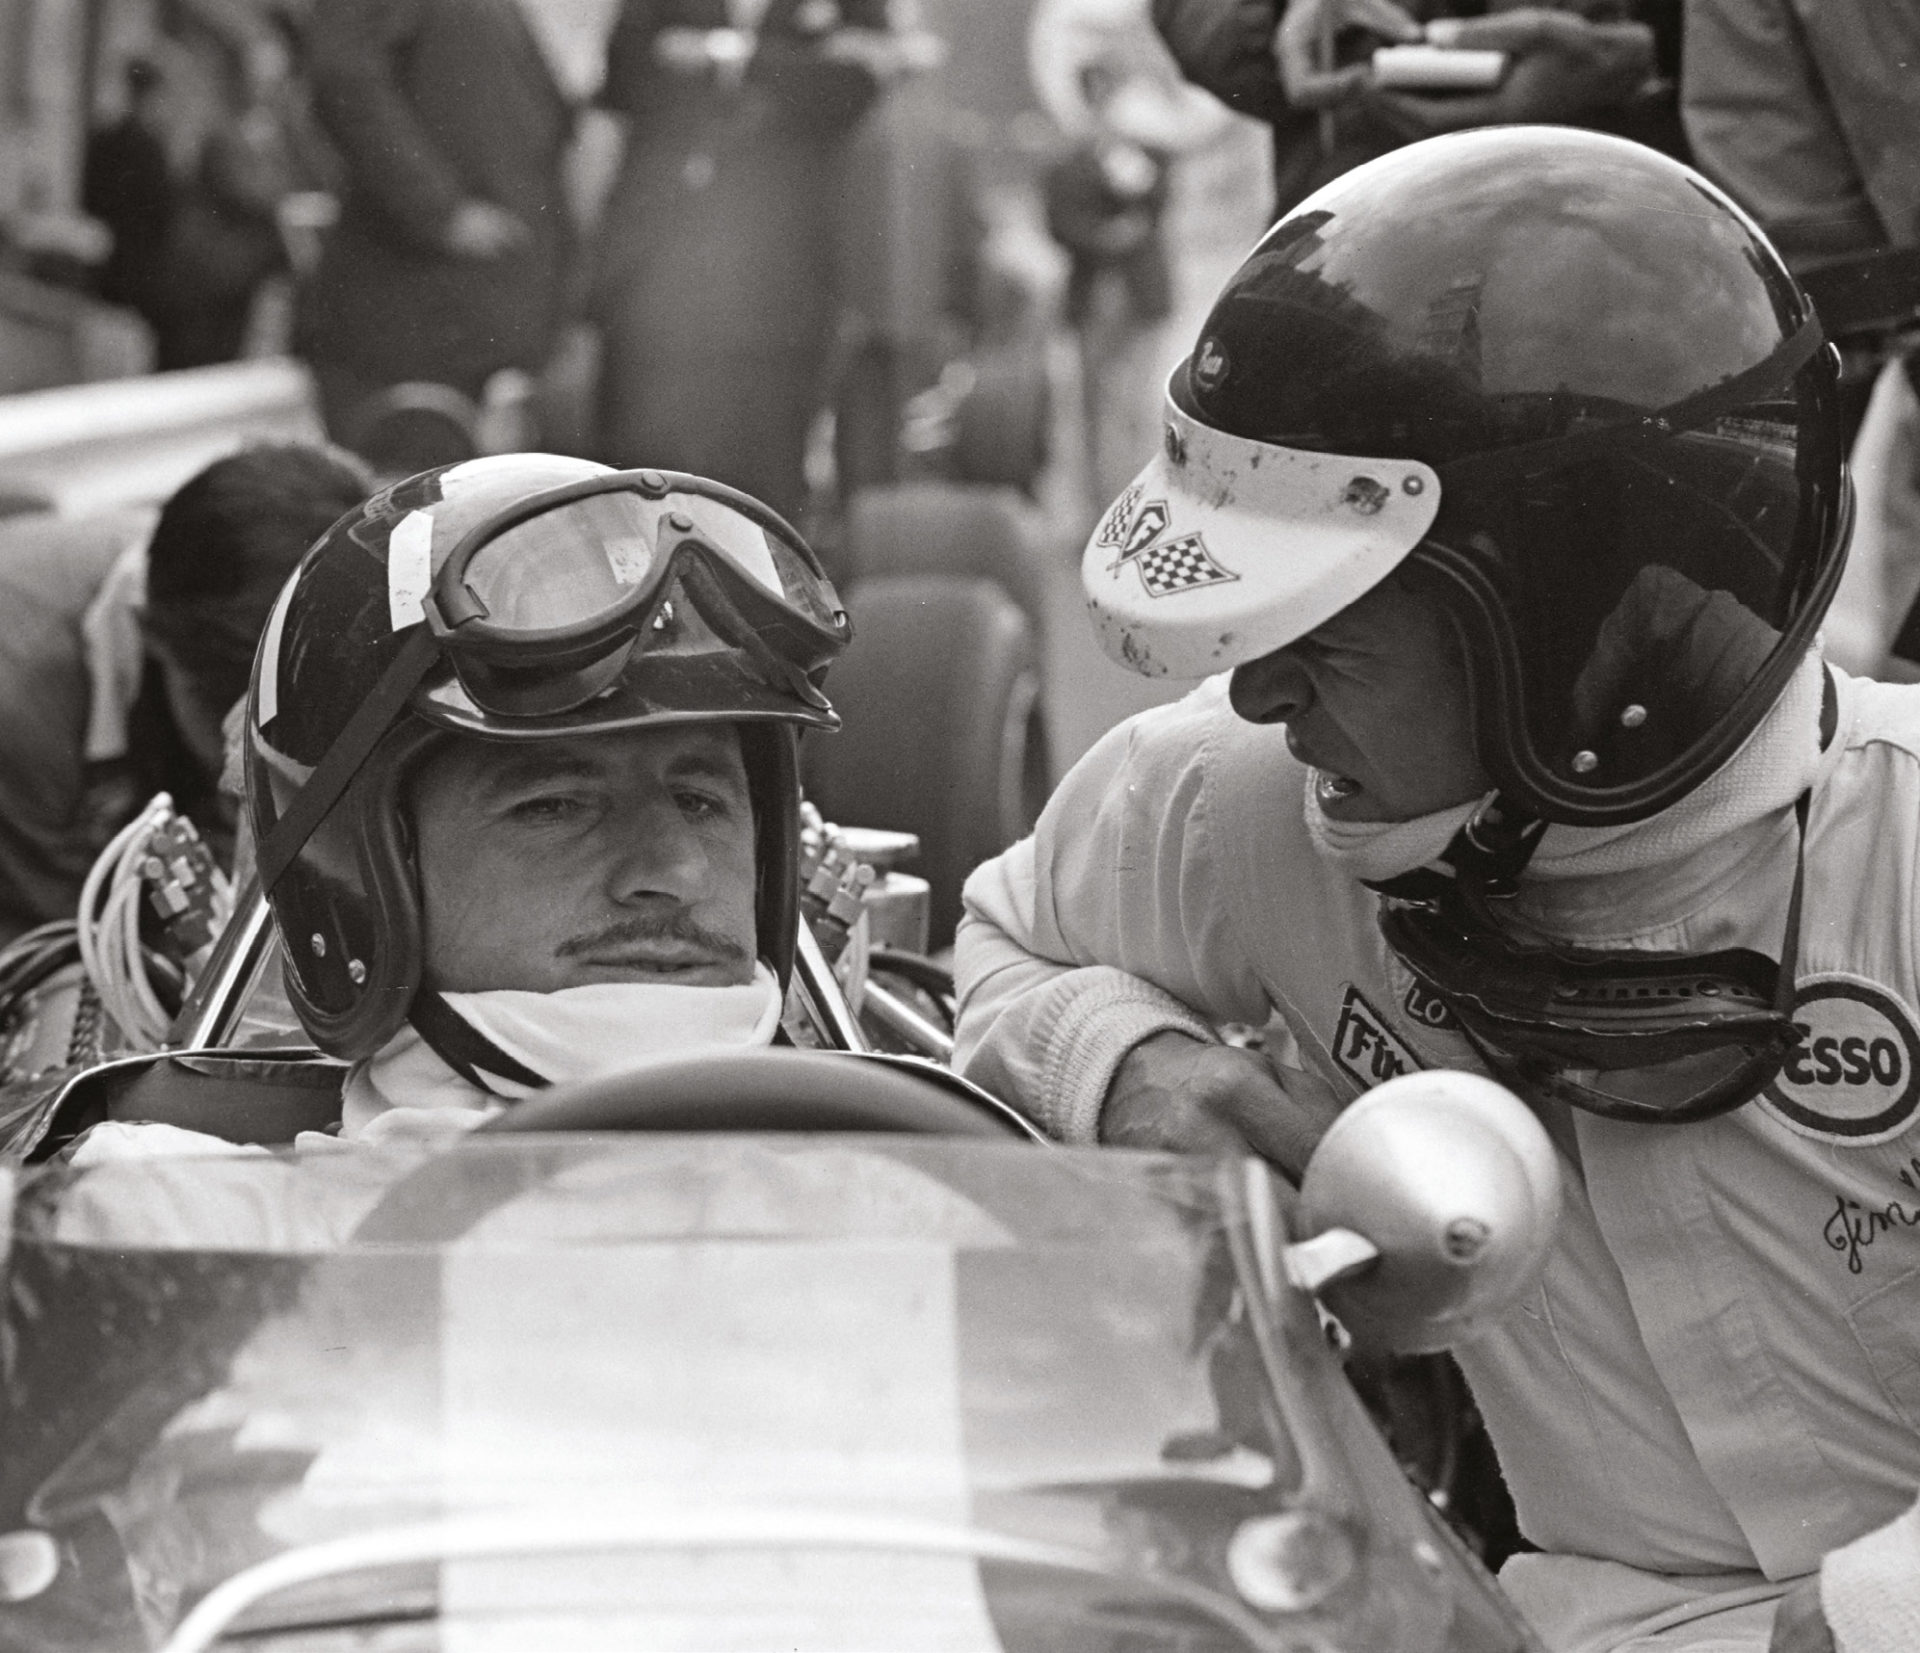 A rivalry based on the utmost respect: Graham Hill and Jim Clark were two giants of their era